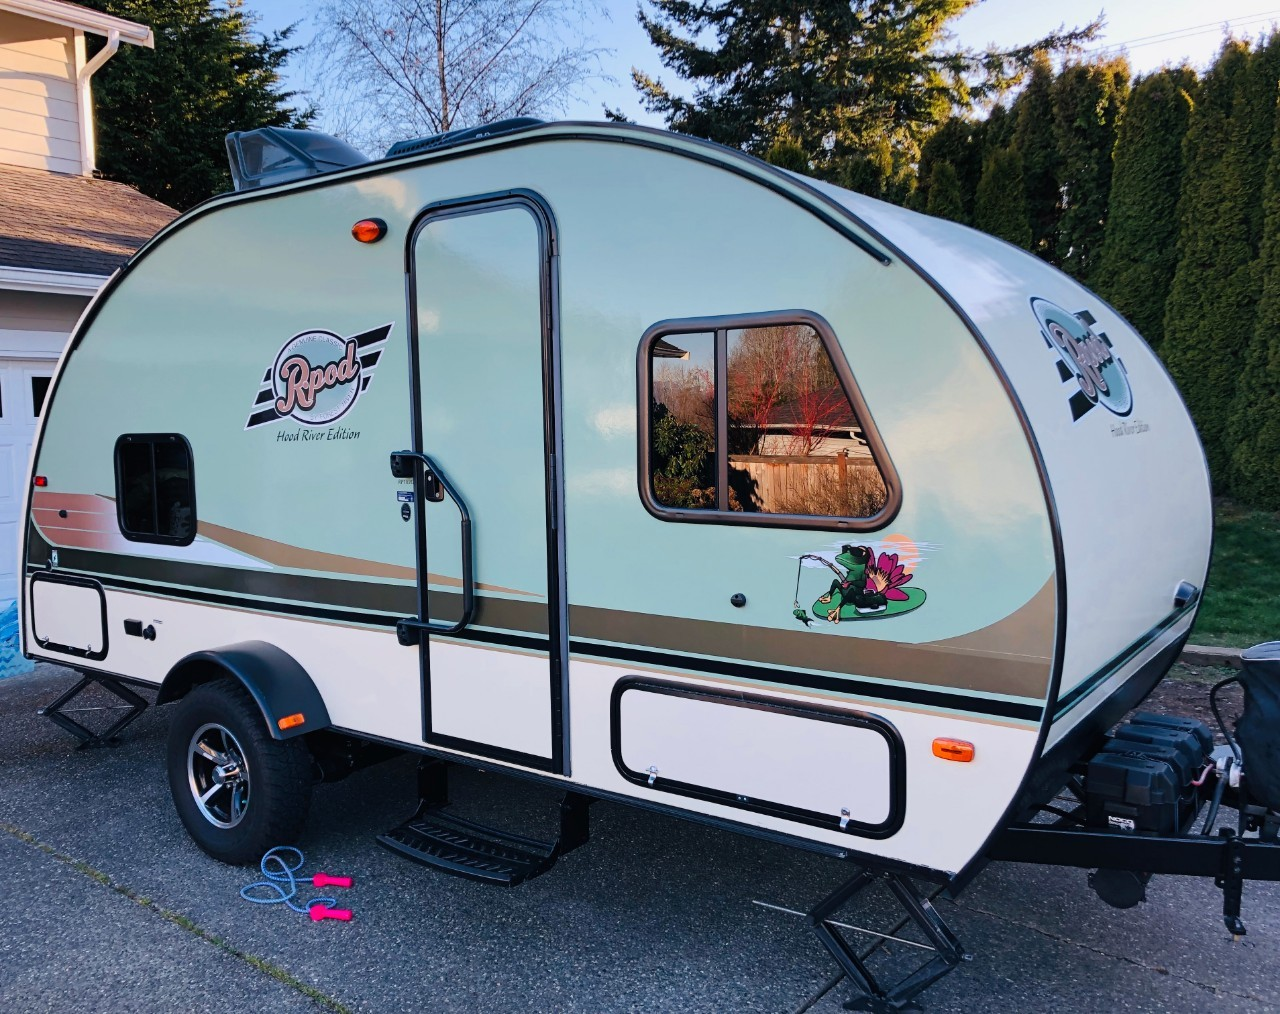 224 Used Forest River R-POD Travel Trailers For Sale - RV Trader